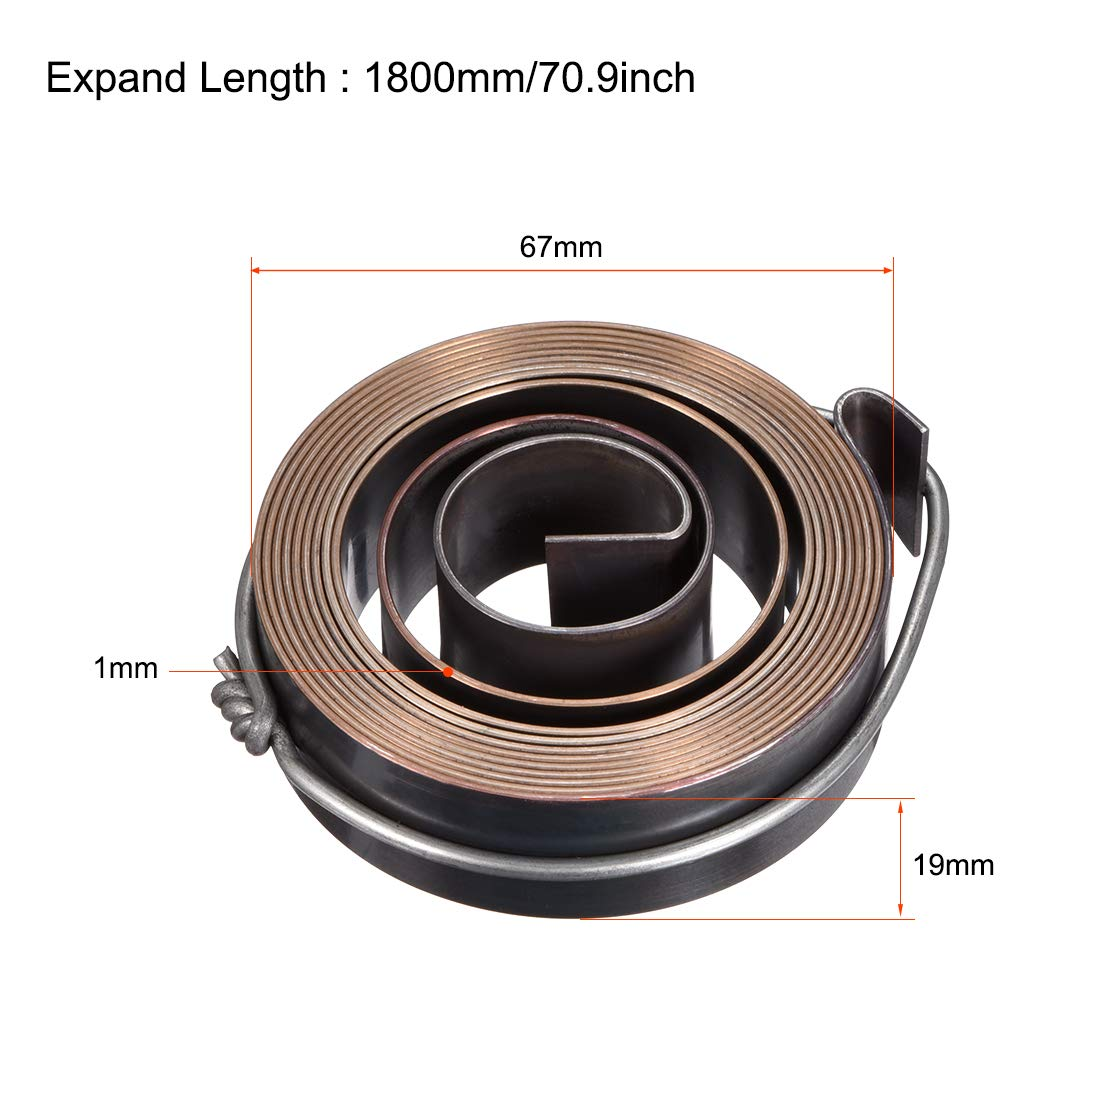 67 x 19 x 1mm ODxWxT Quill Spring Feed Return Coil Spring Assembly sourcing map Drill Press Return Spring 1800mm Long